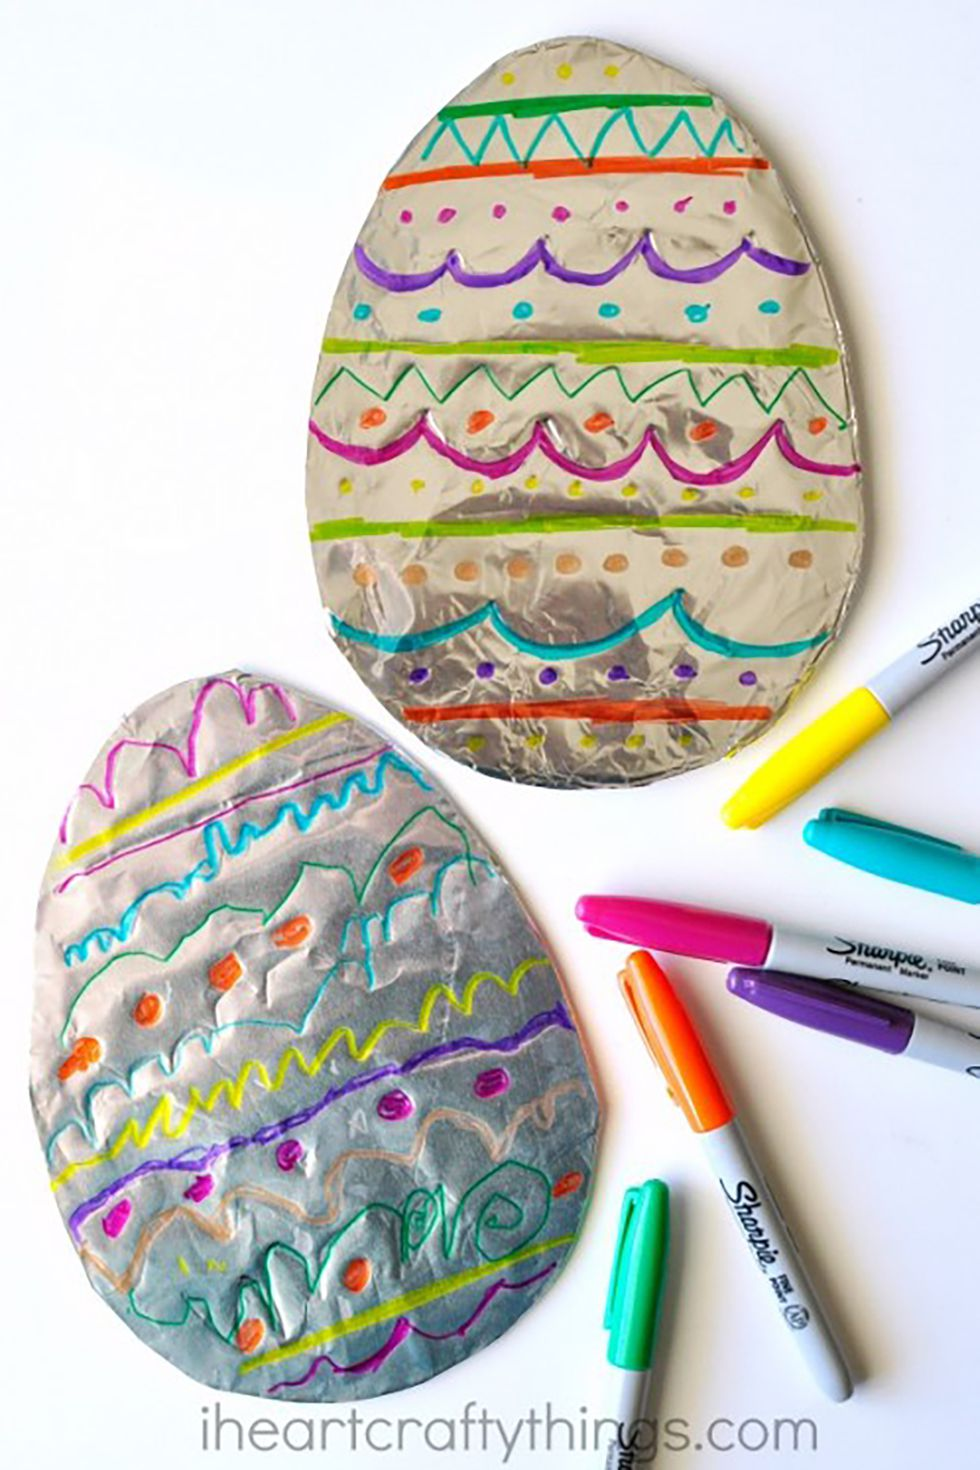 Fun crafts for kids - 15 Tutorials